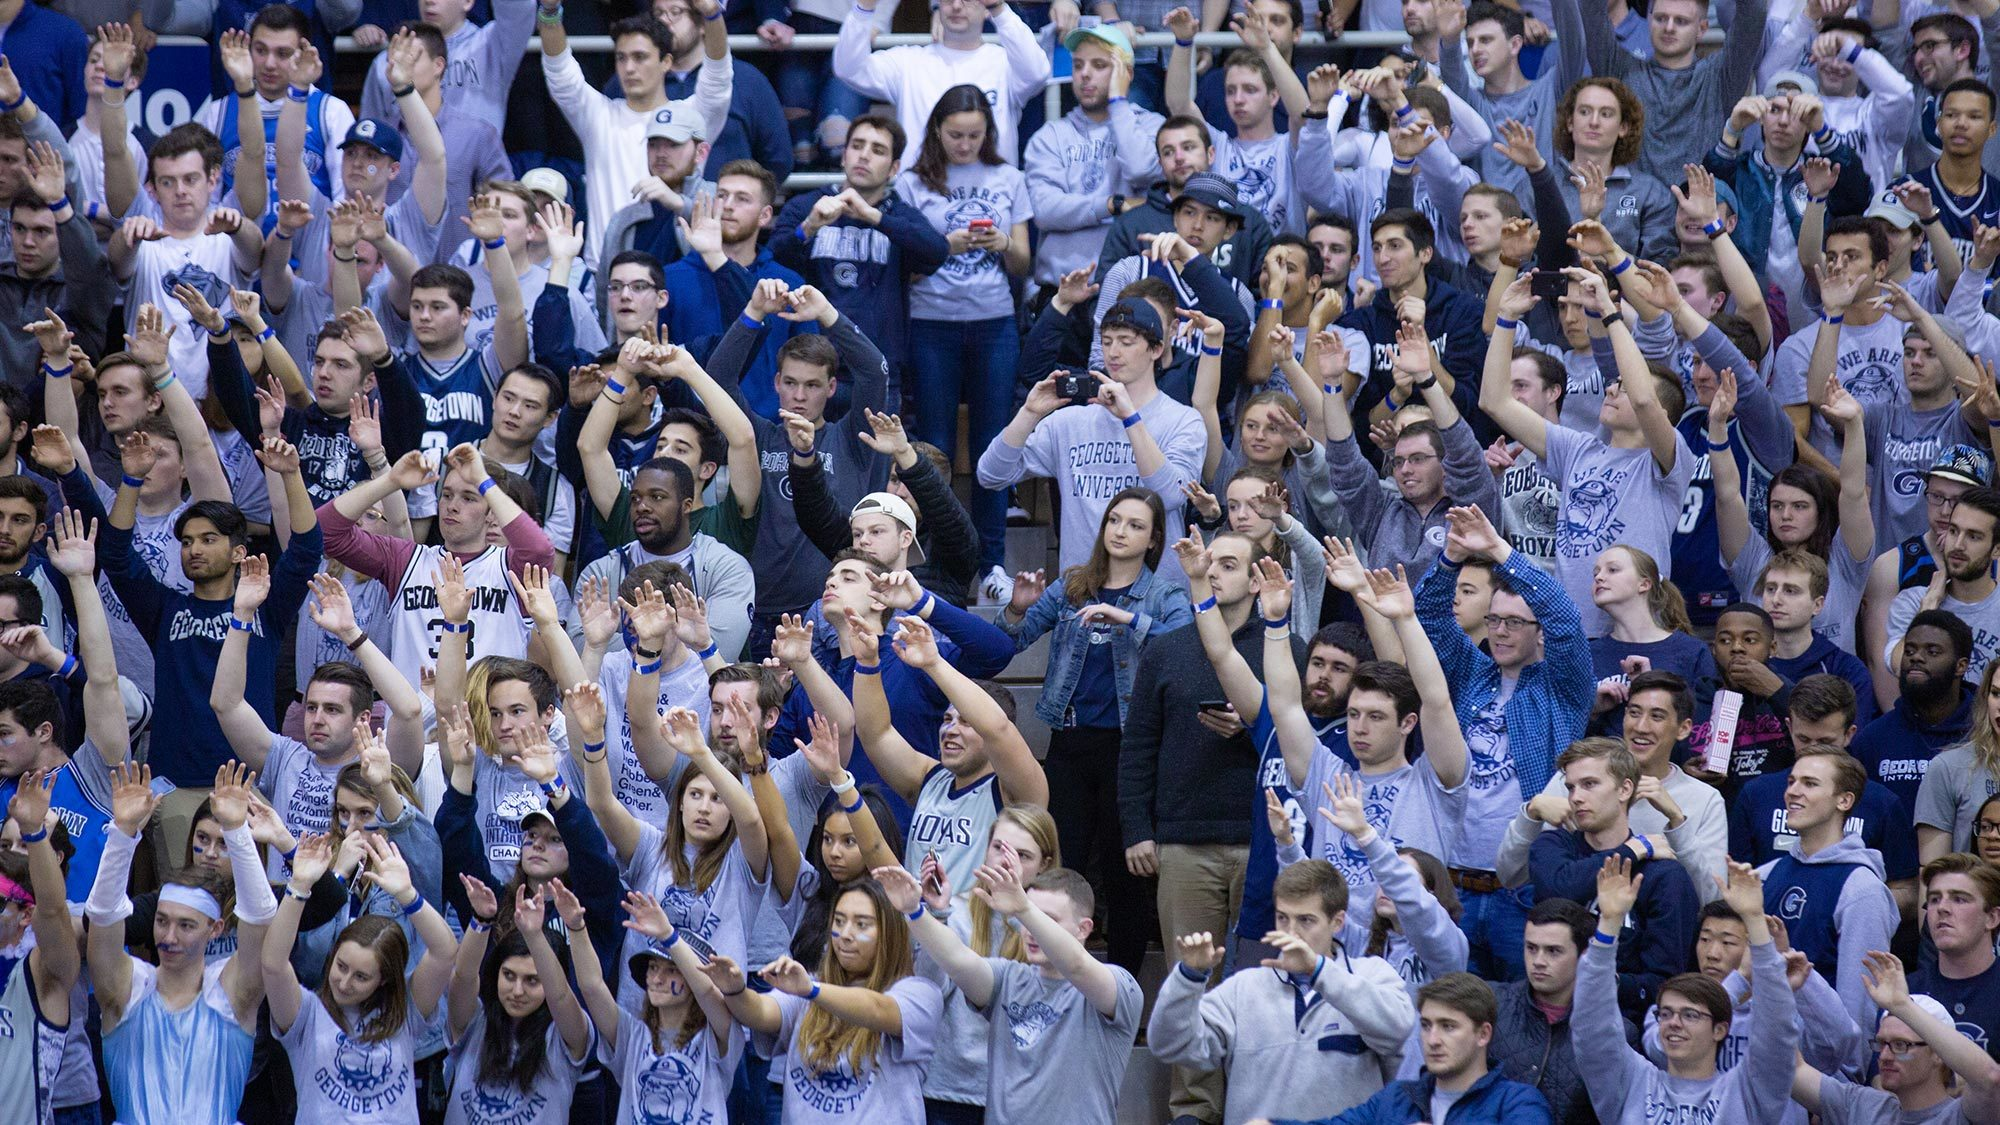 Georgetown students attend a basketball game